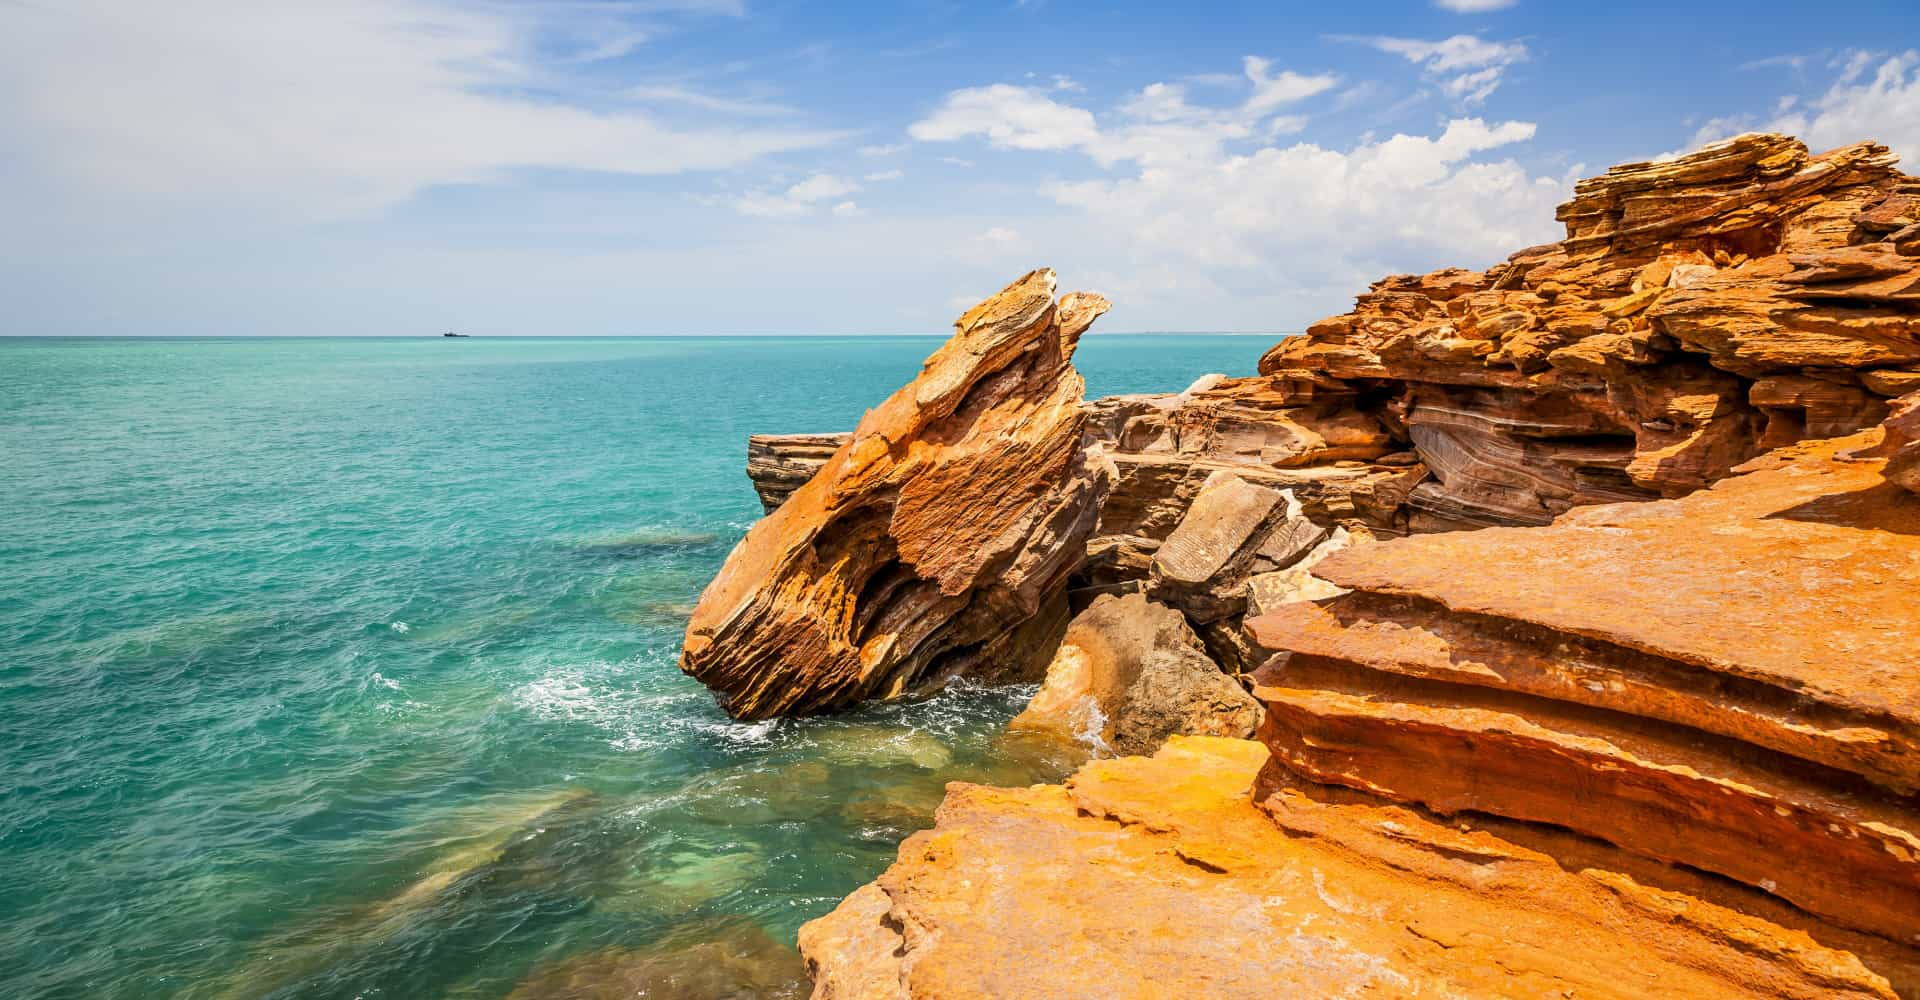 Breathtaking pictures of Broome, WA